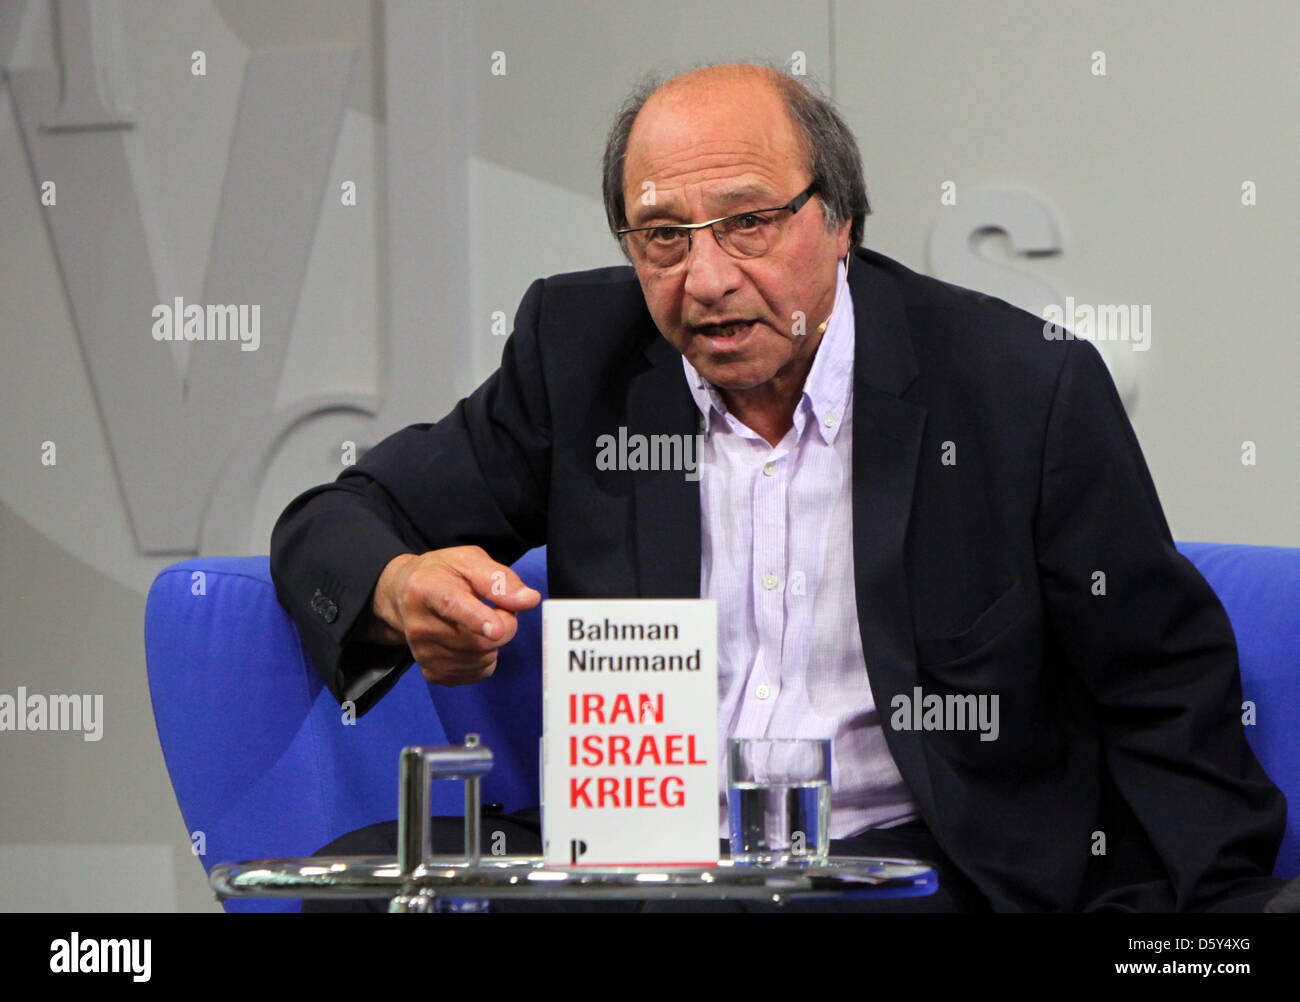 Iranian writer and publicist Bahman Nirumand presents his new book 'Iran Israel Krieg' (lit. Iran Israel - Stock Image